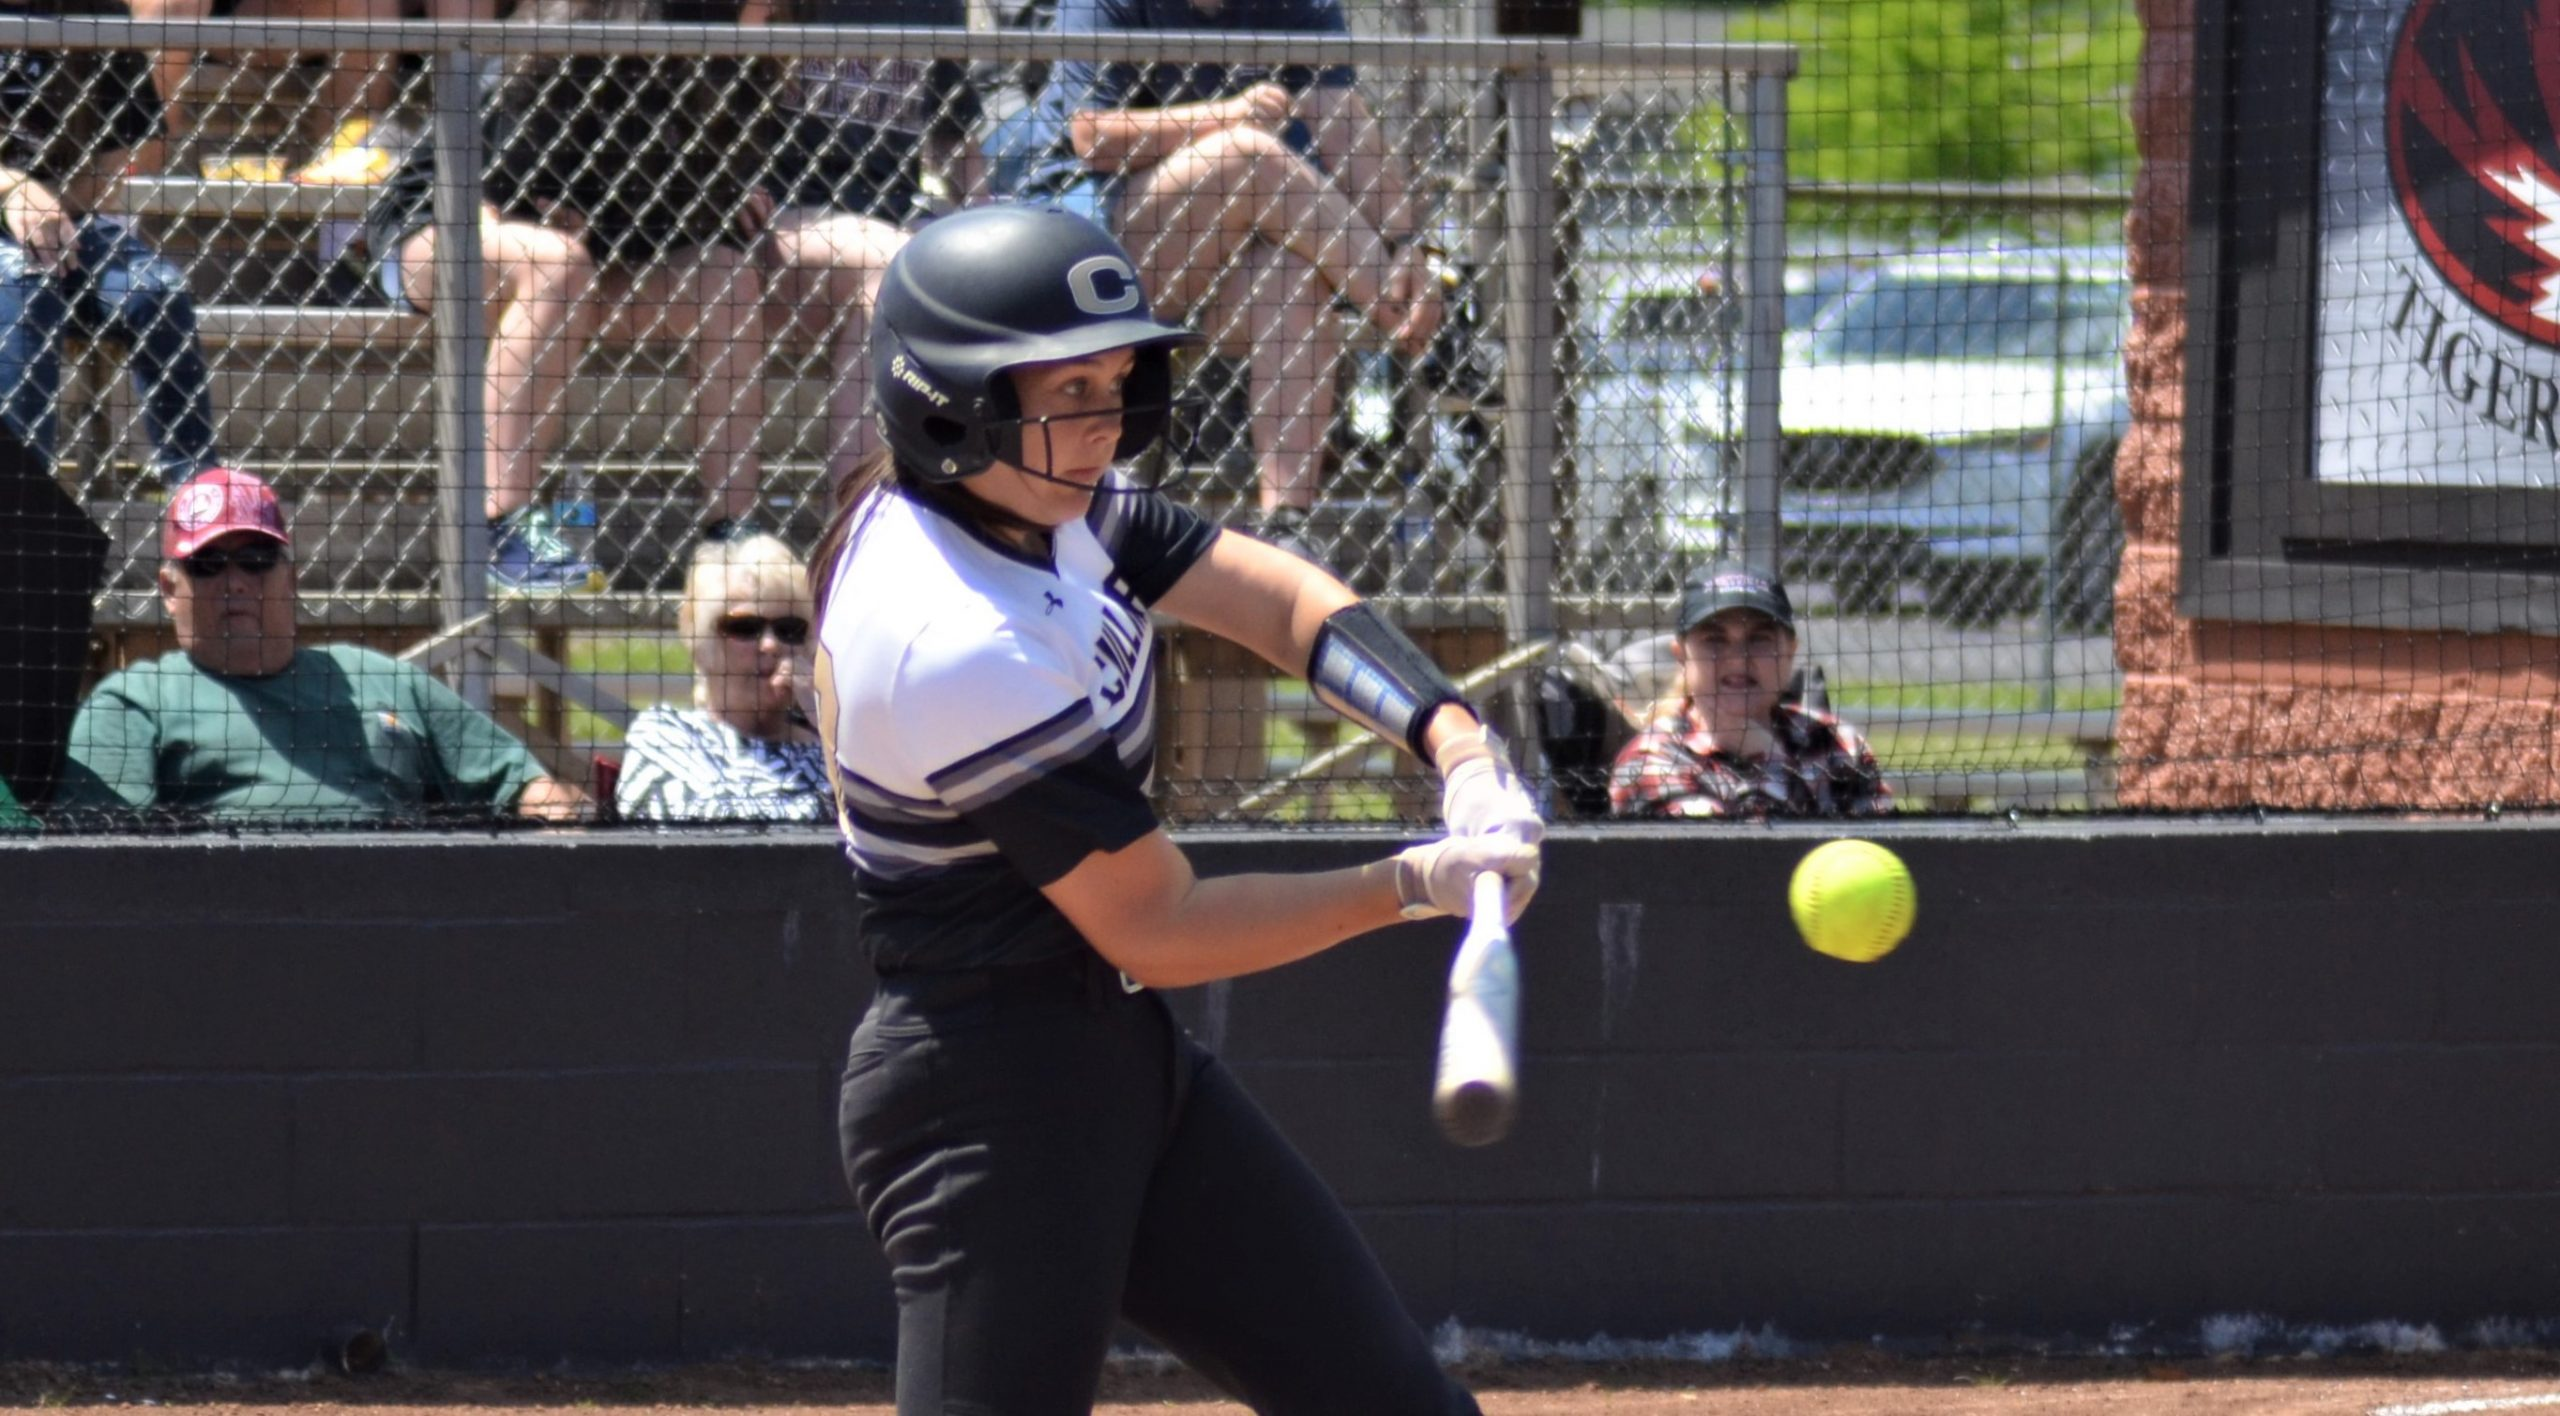 AREA SOFTBALL TOURNAMENT: Lady Bearcats finish area runners-up, advance to North Regional